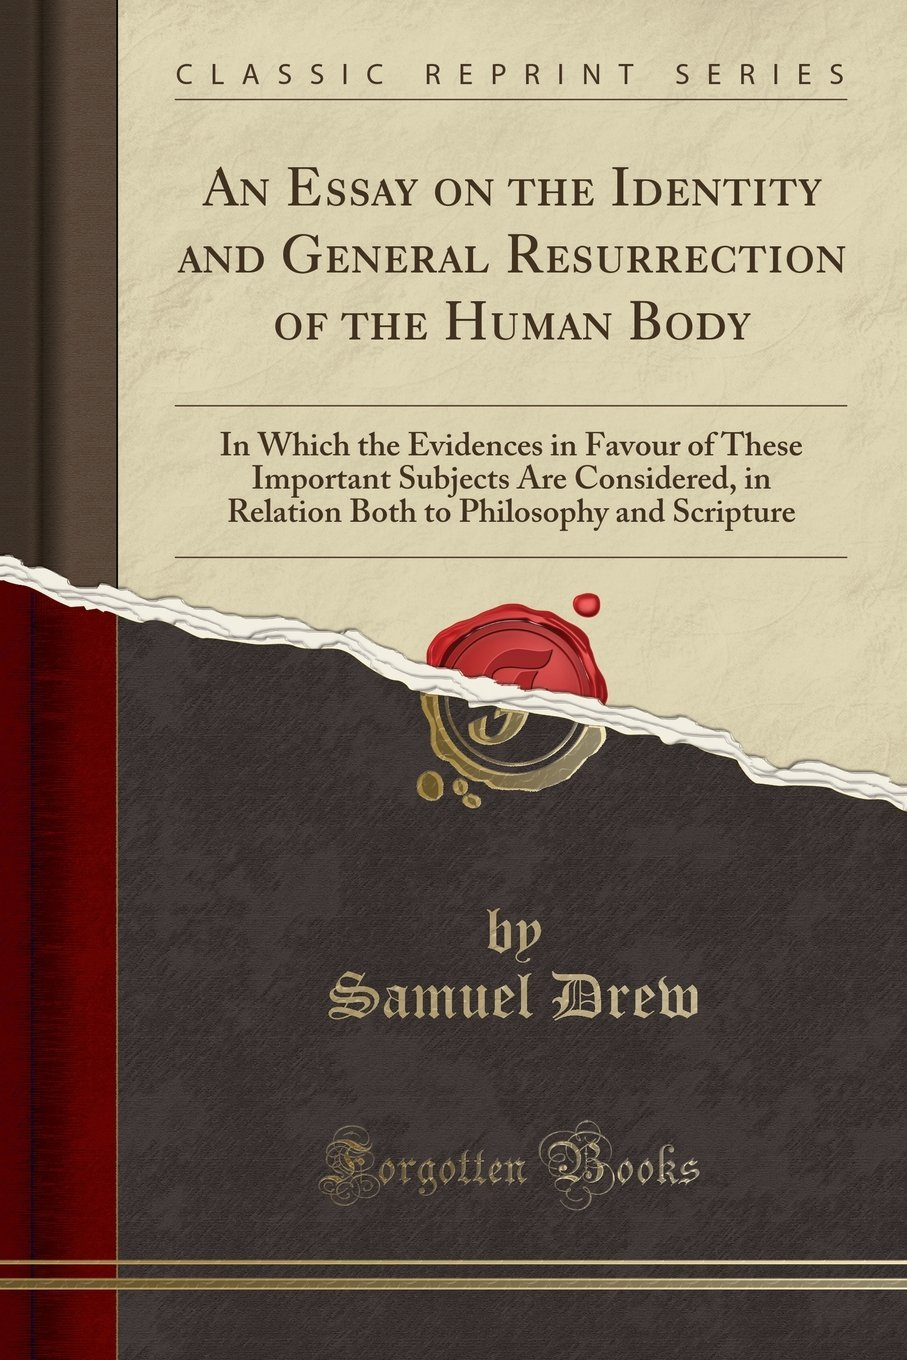 Download An Essay on the Identity and General Resurrection of the Human Body: In Which the Evidences in Favour of These Important Subjects Are Considered, in to Philosophy and Scripture (Classic Reprint) pdf epub